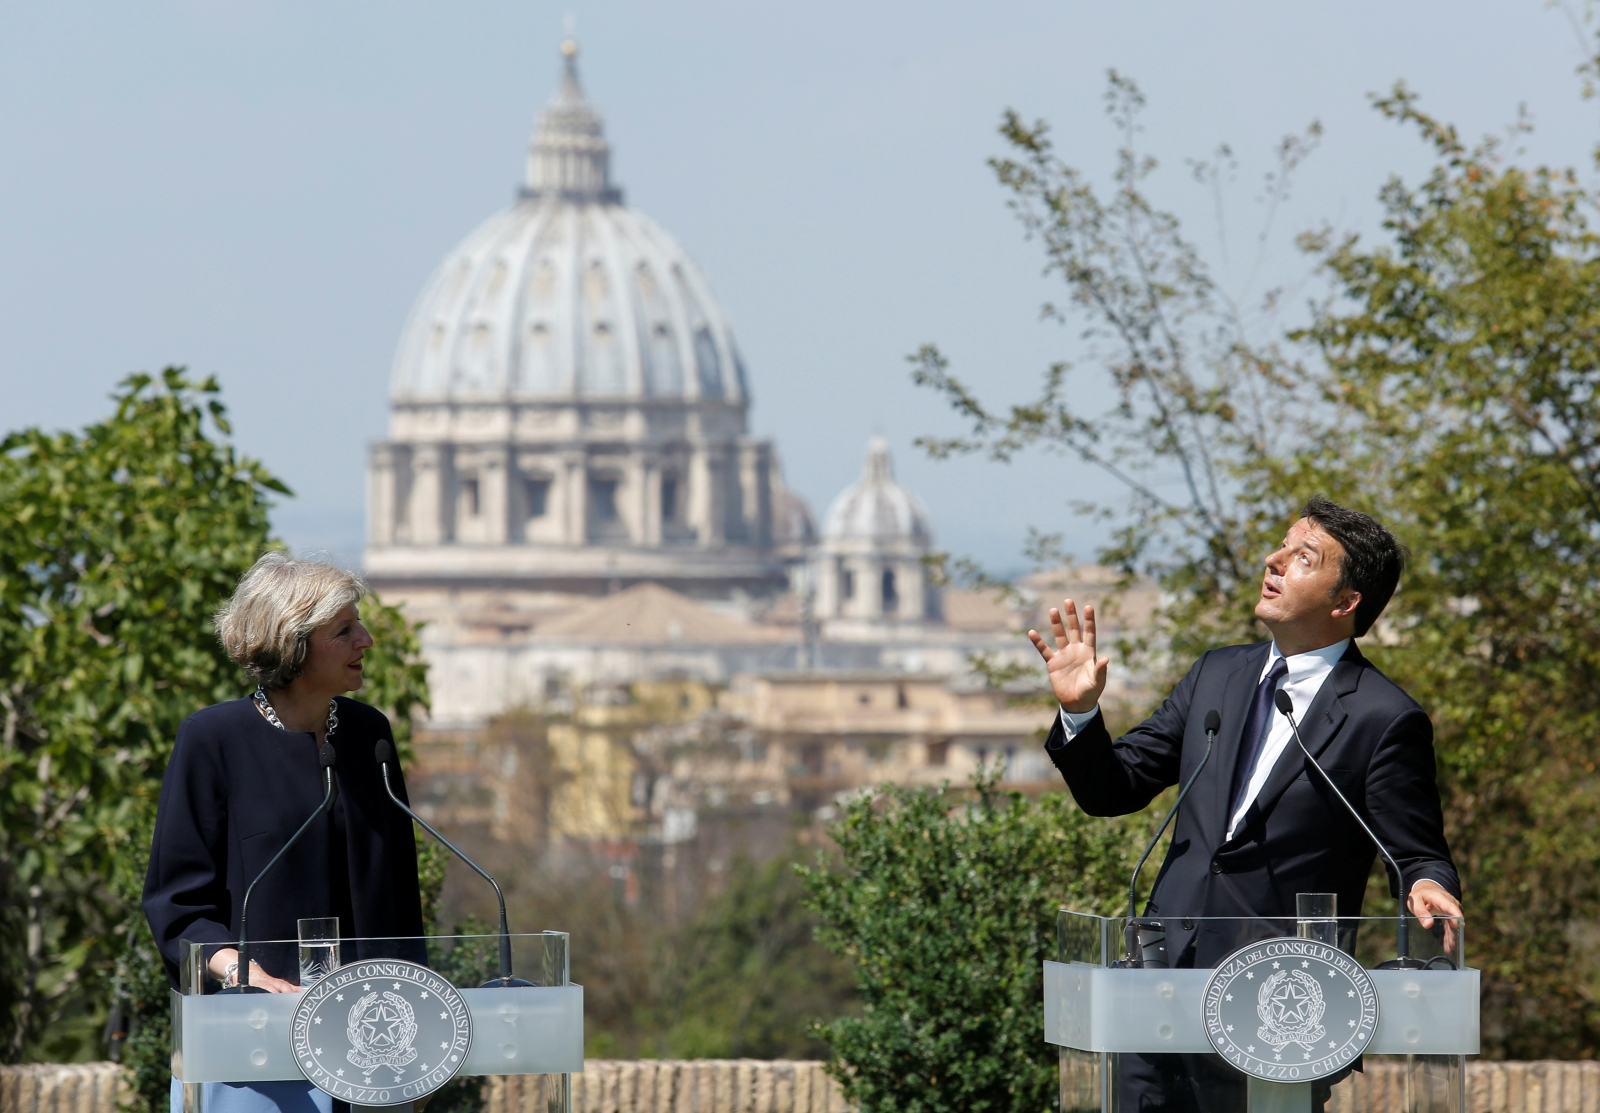 Theresa May and Matteo Renzi